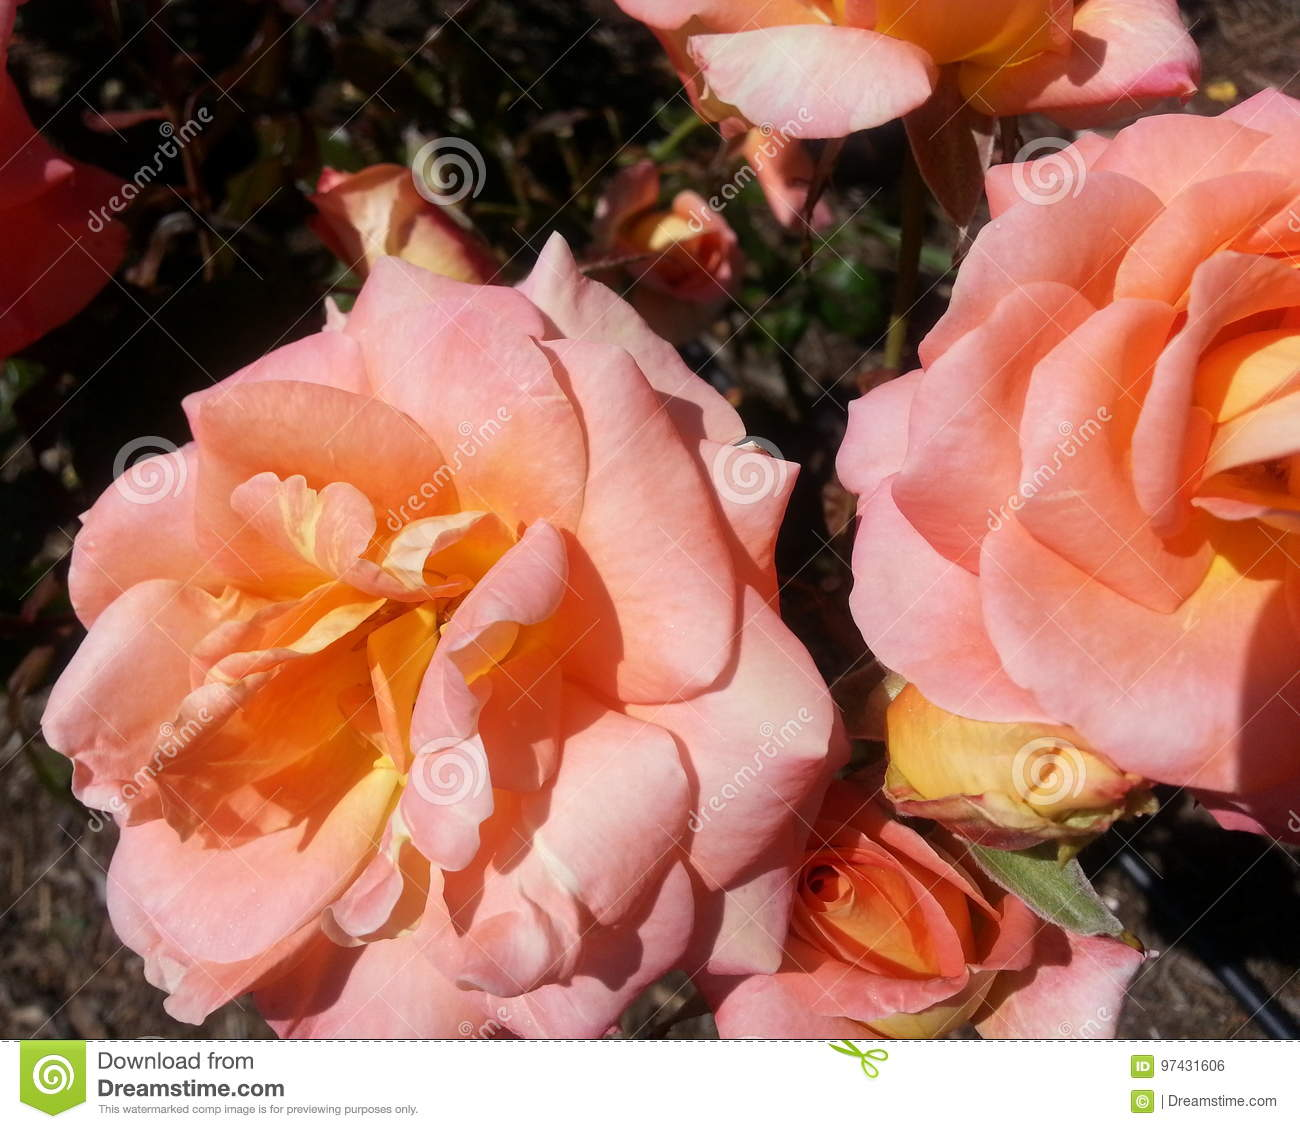 Download Artistry Roses stock photo. Image of ideal, orange, beautiful - 97431606